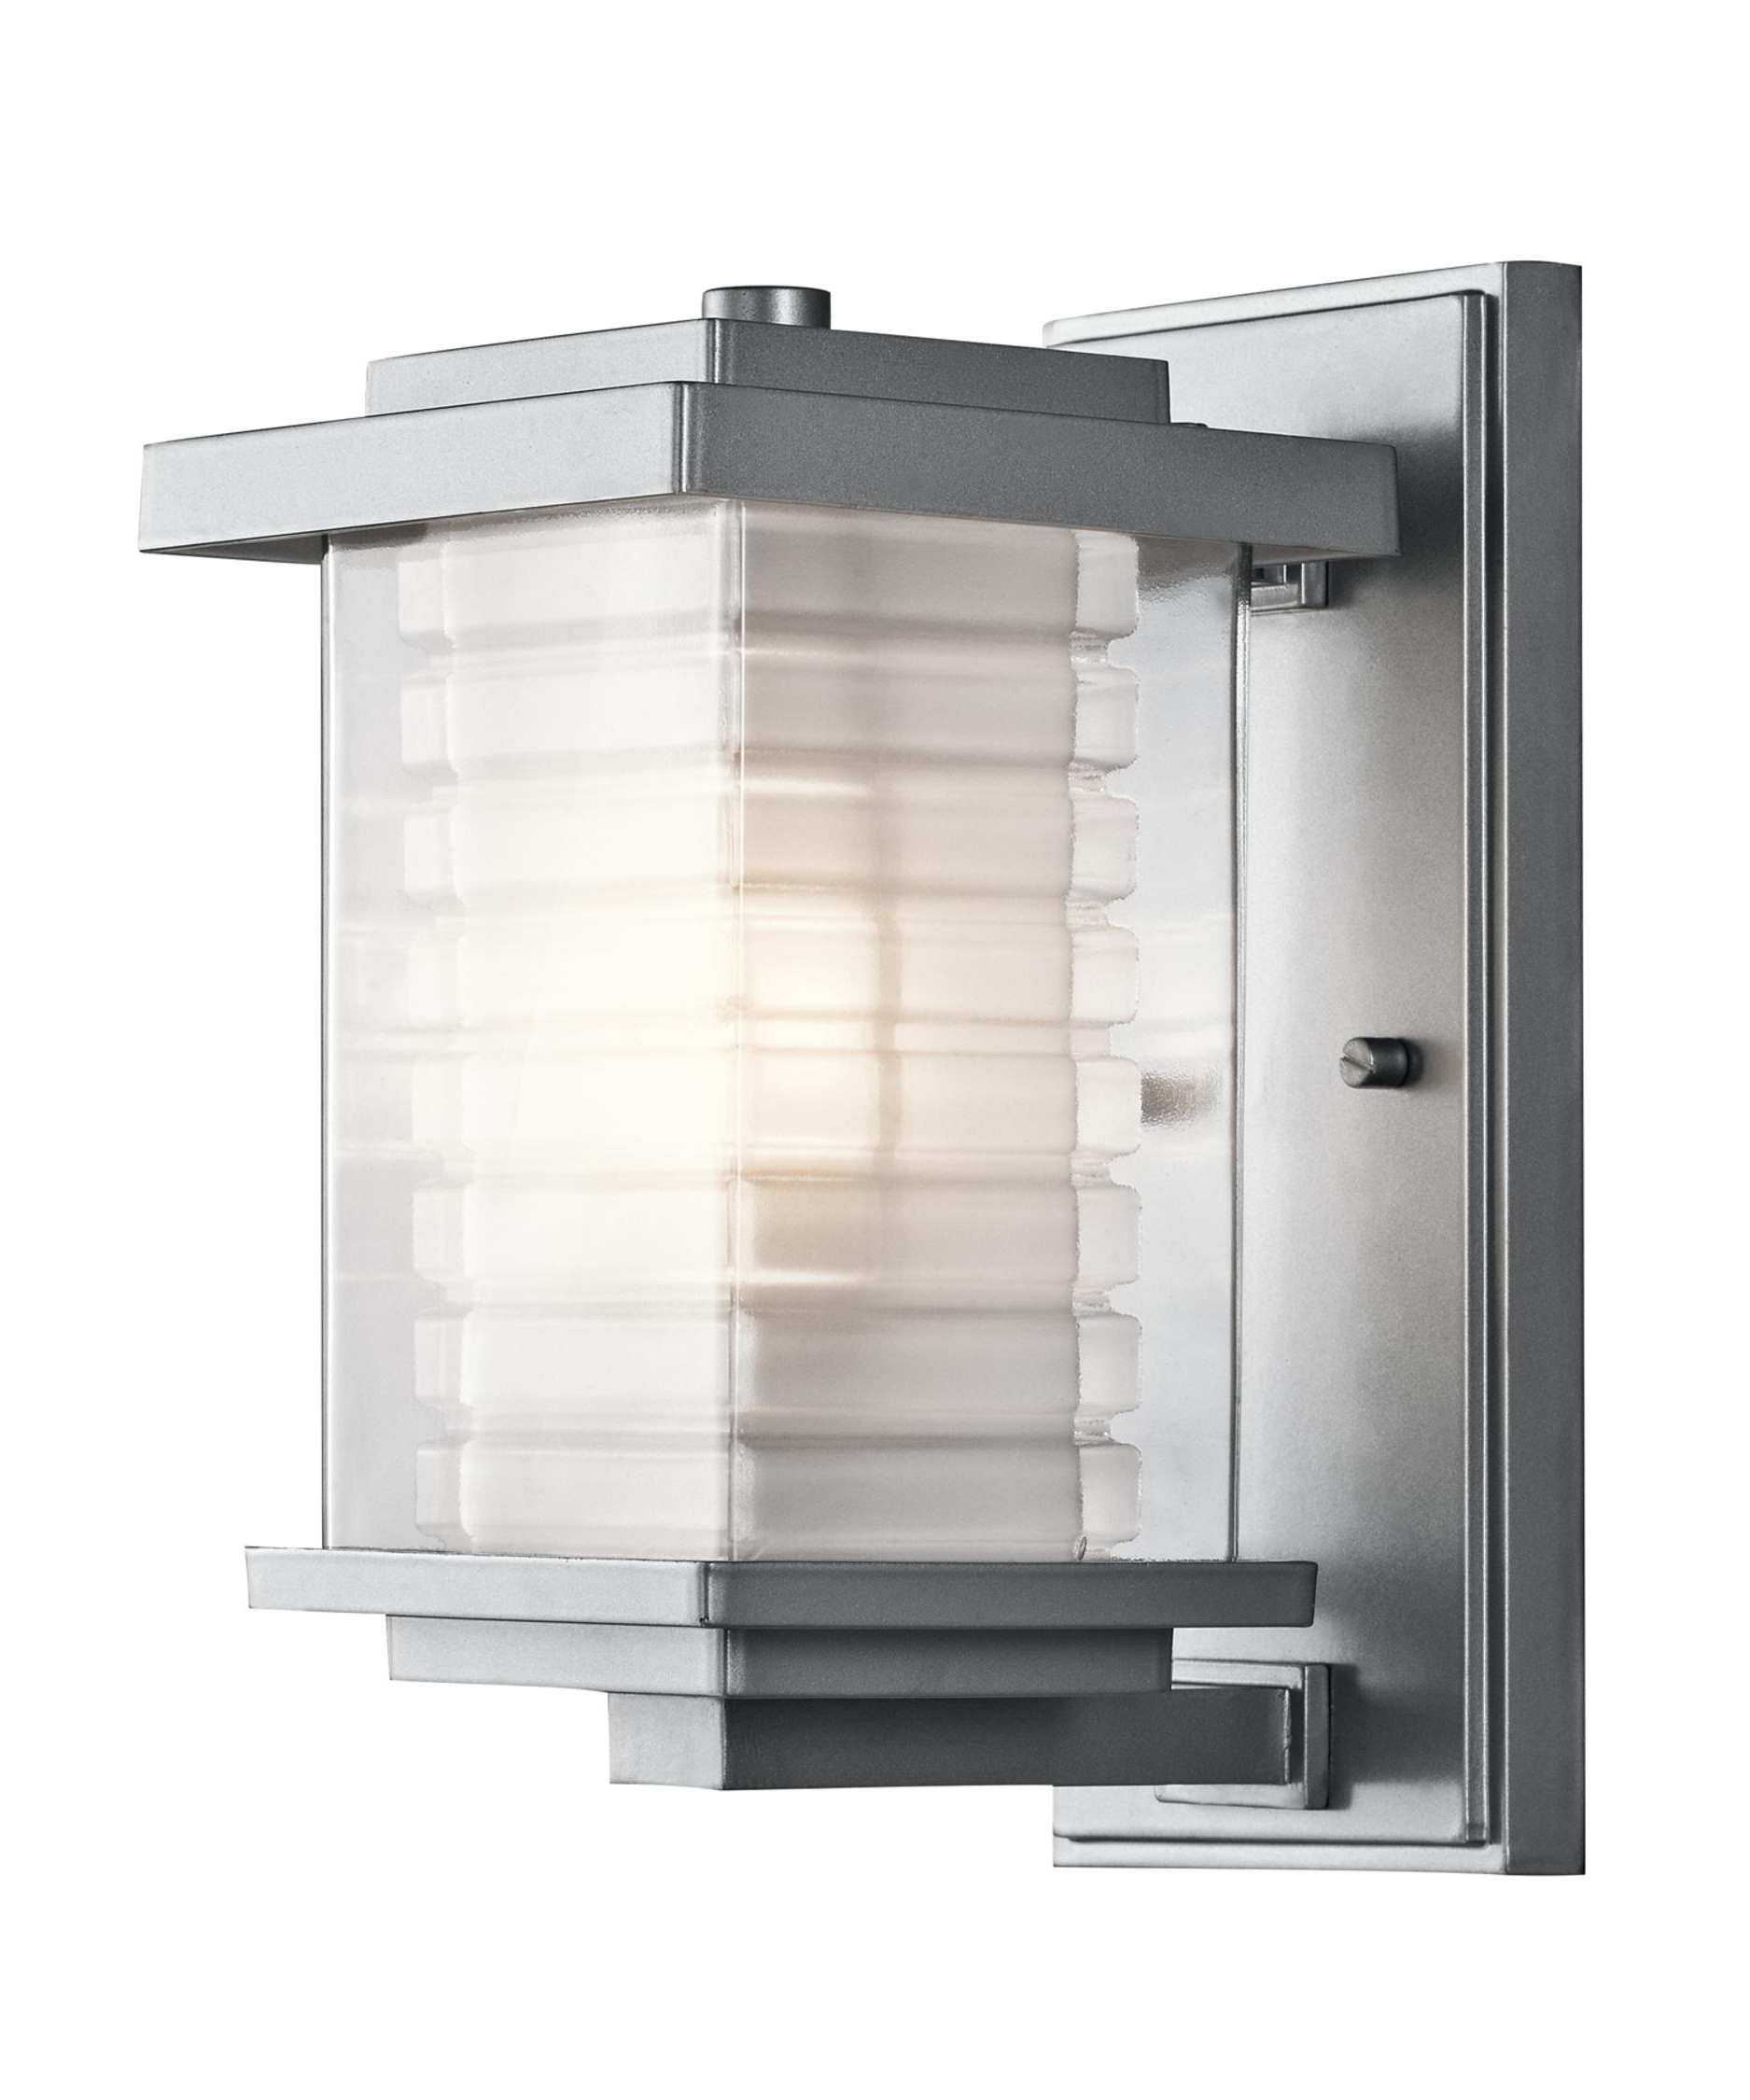 Outdoor Wall Lighting At Kichler With Regard To Most Recently Released Kichler 49364 Ascari 6 Inch Wide 1 Light Outdoor Wall Light (View 8 of 20)